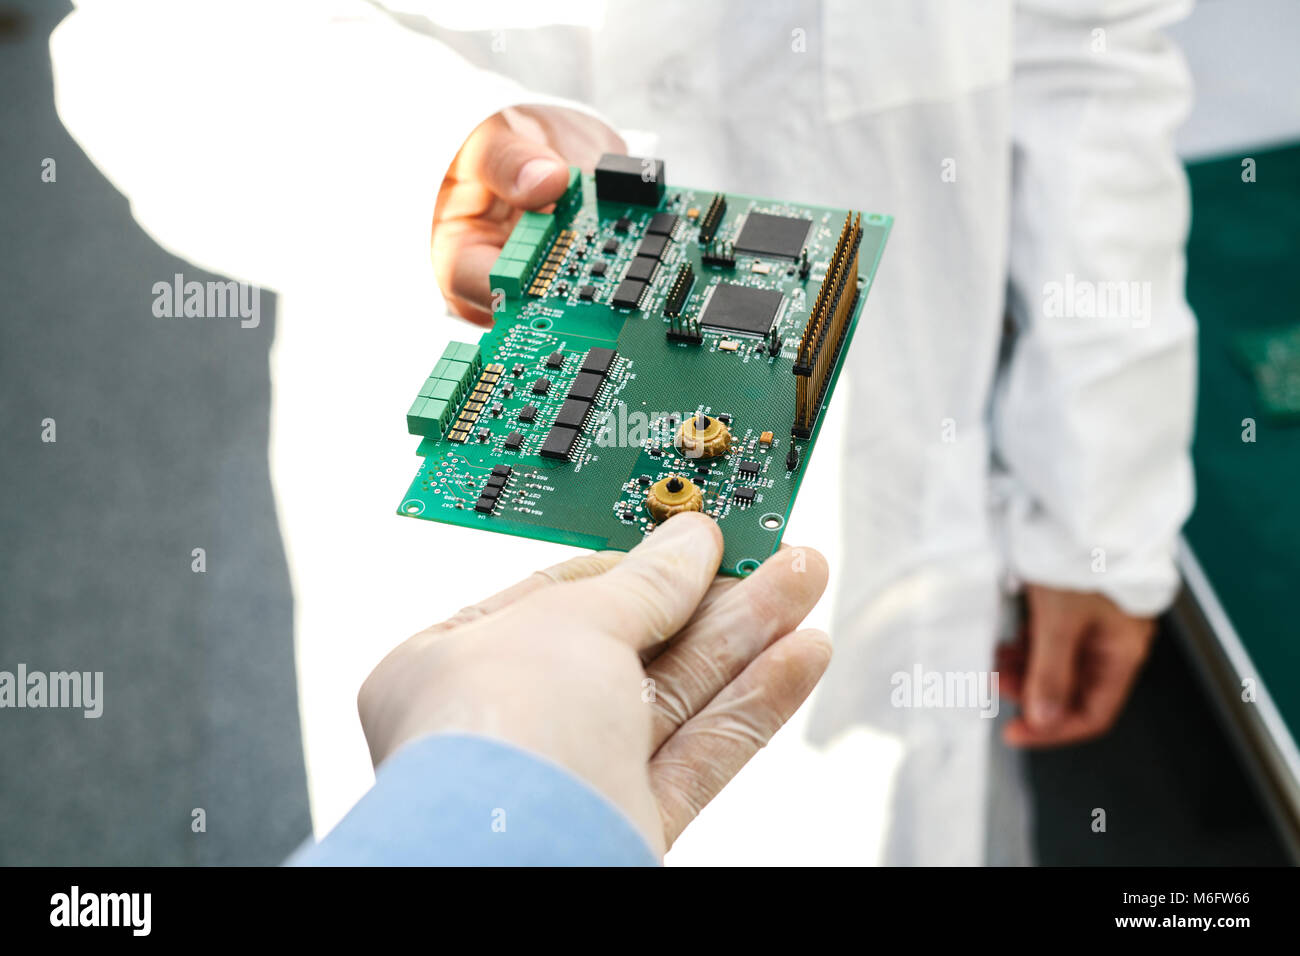 Computer Parts Conceptual Stock Photos Circuit Board Technician With Chips Spare And Components For Equipment